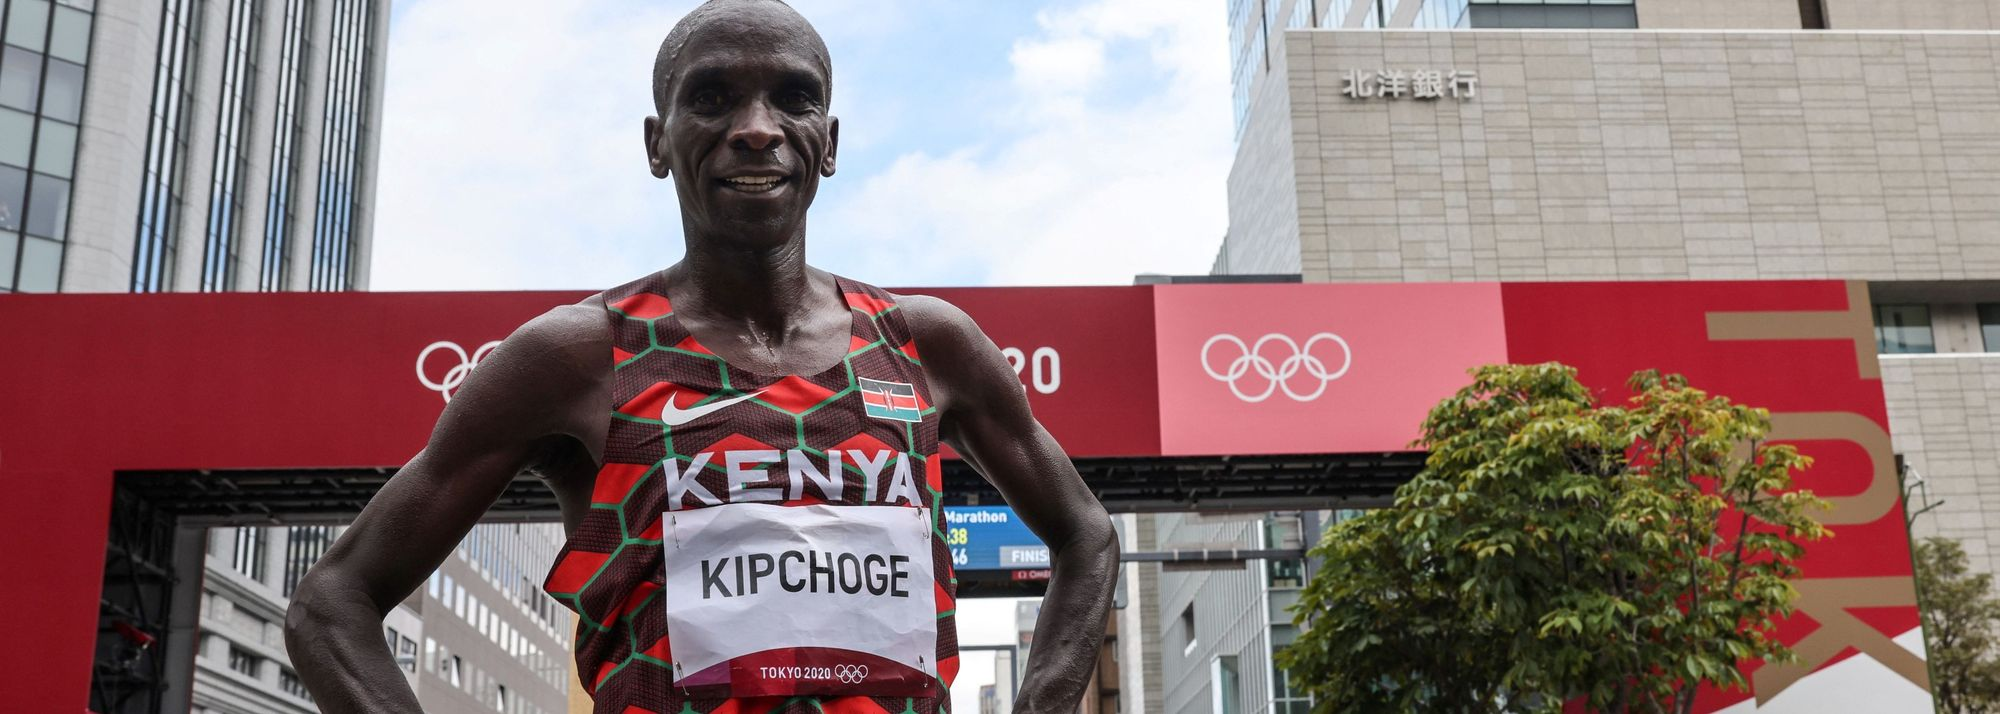 Two-time Olympic marathon champion Eliud Kipchoge is to take on Paris 2024 mass race hopefuls later this month in a running challenge being held to mark 1000 days until the Olympics in the French capital.